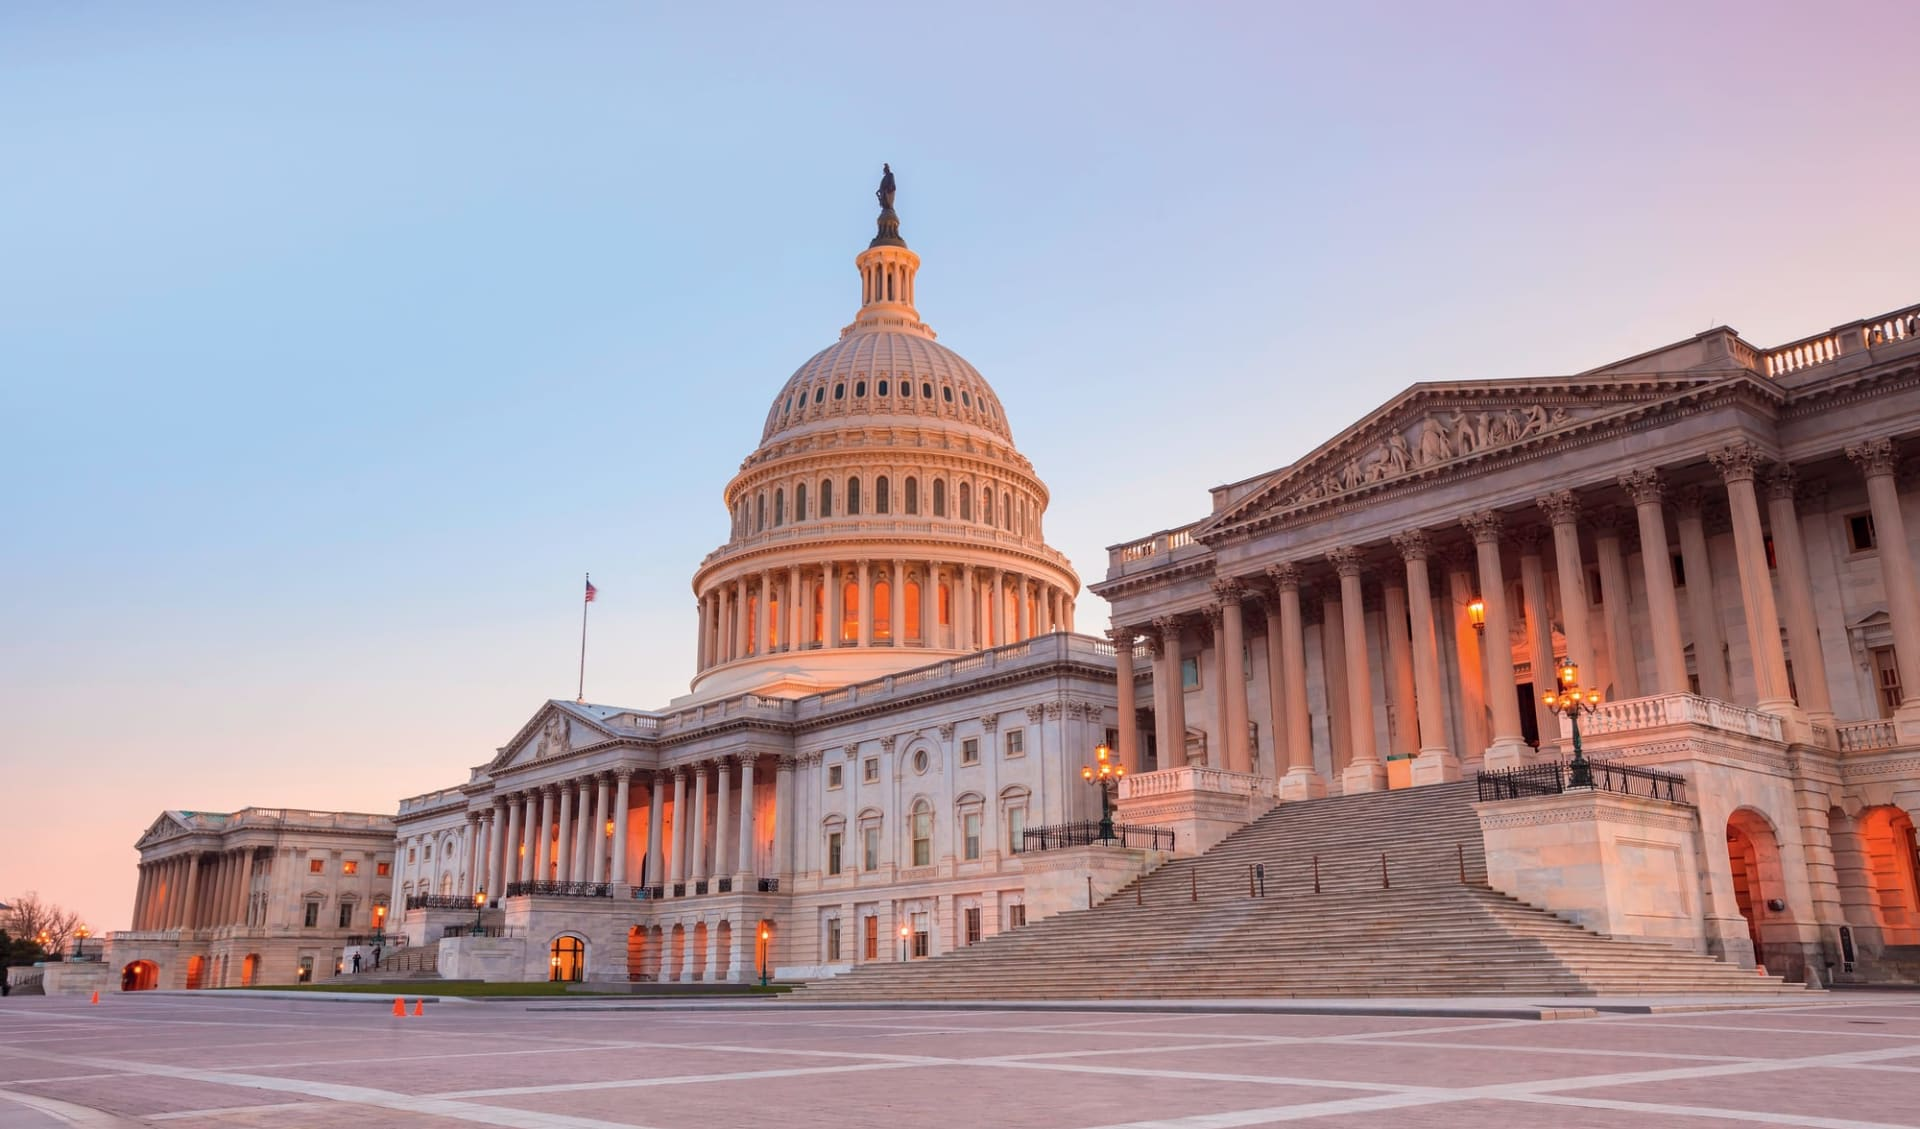 Eastern Highlights ab Boston: USA - District of Columbia - Capitol in Washington